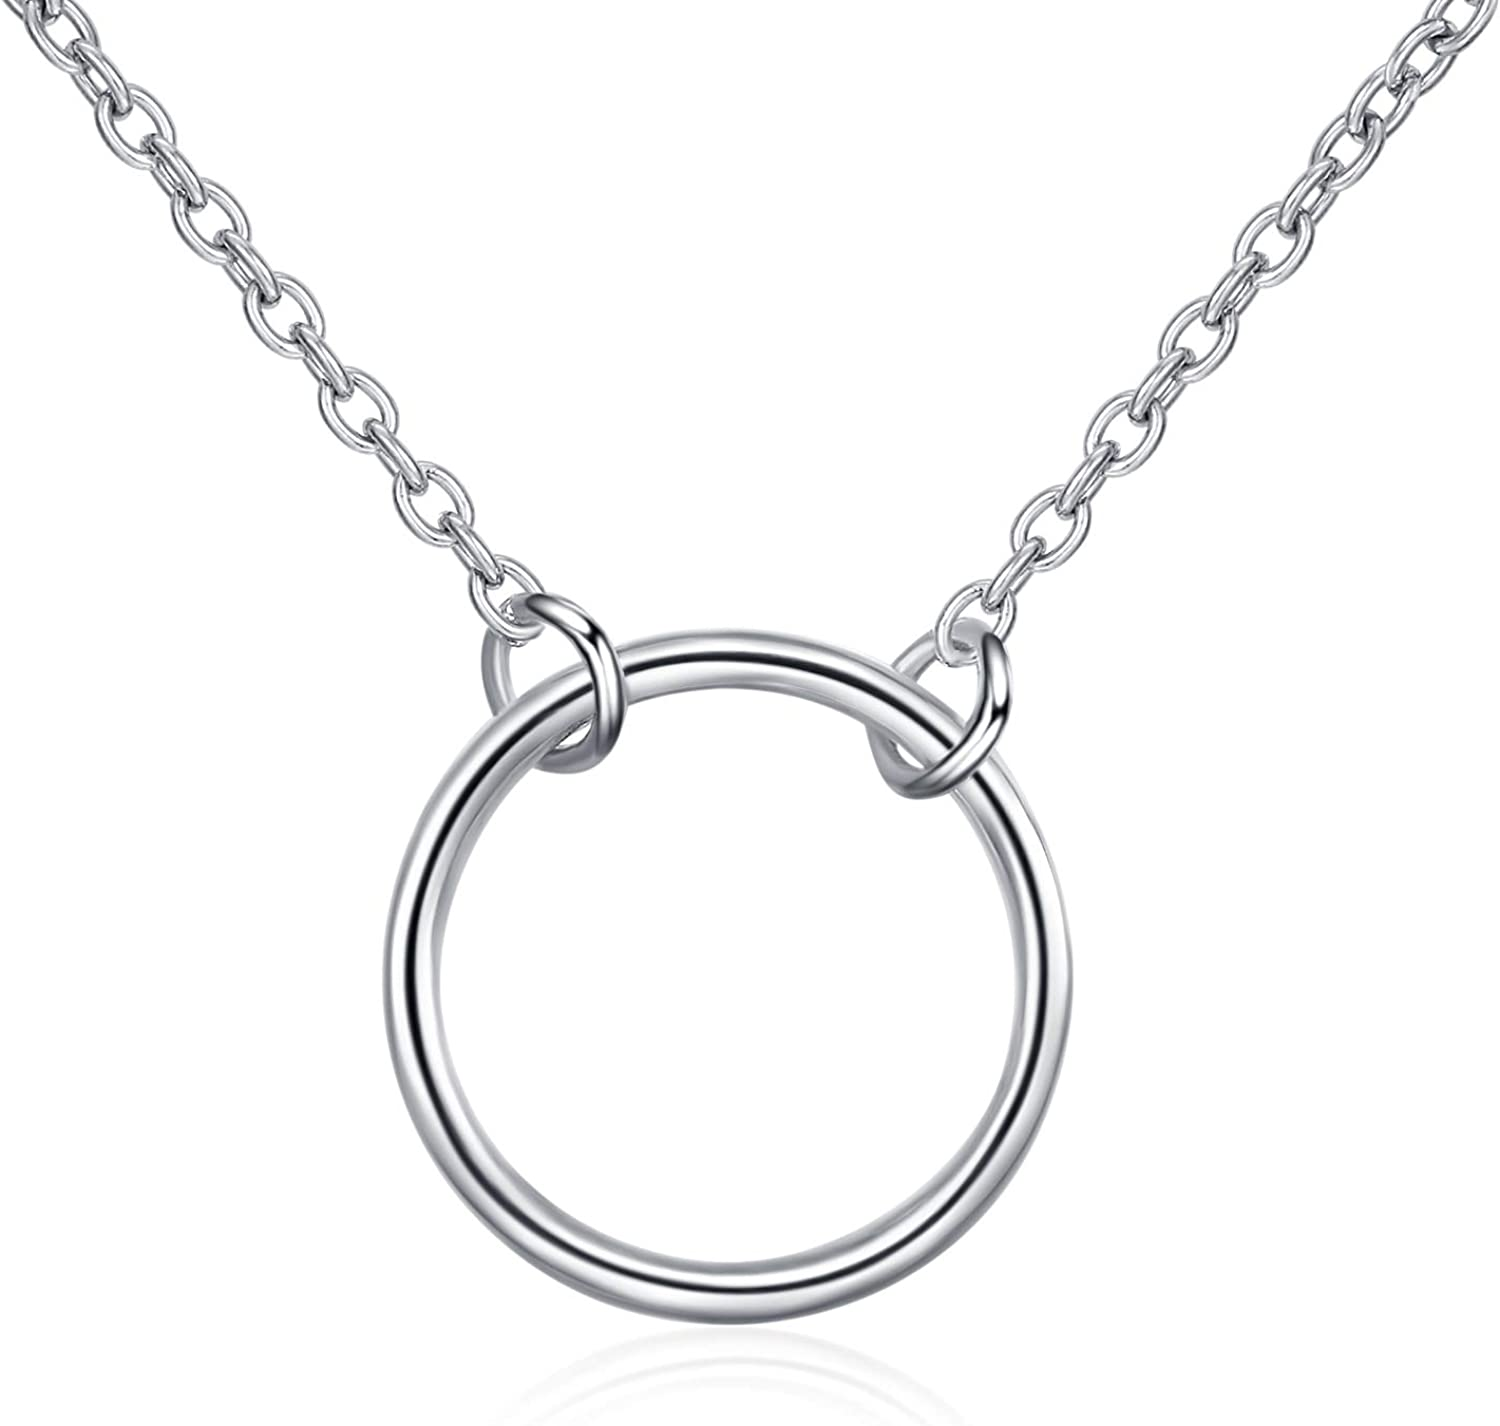 Small Sterling Silver Juggler/'s Club Necklace